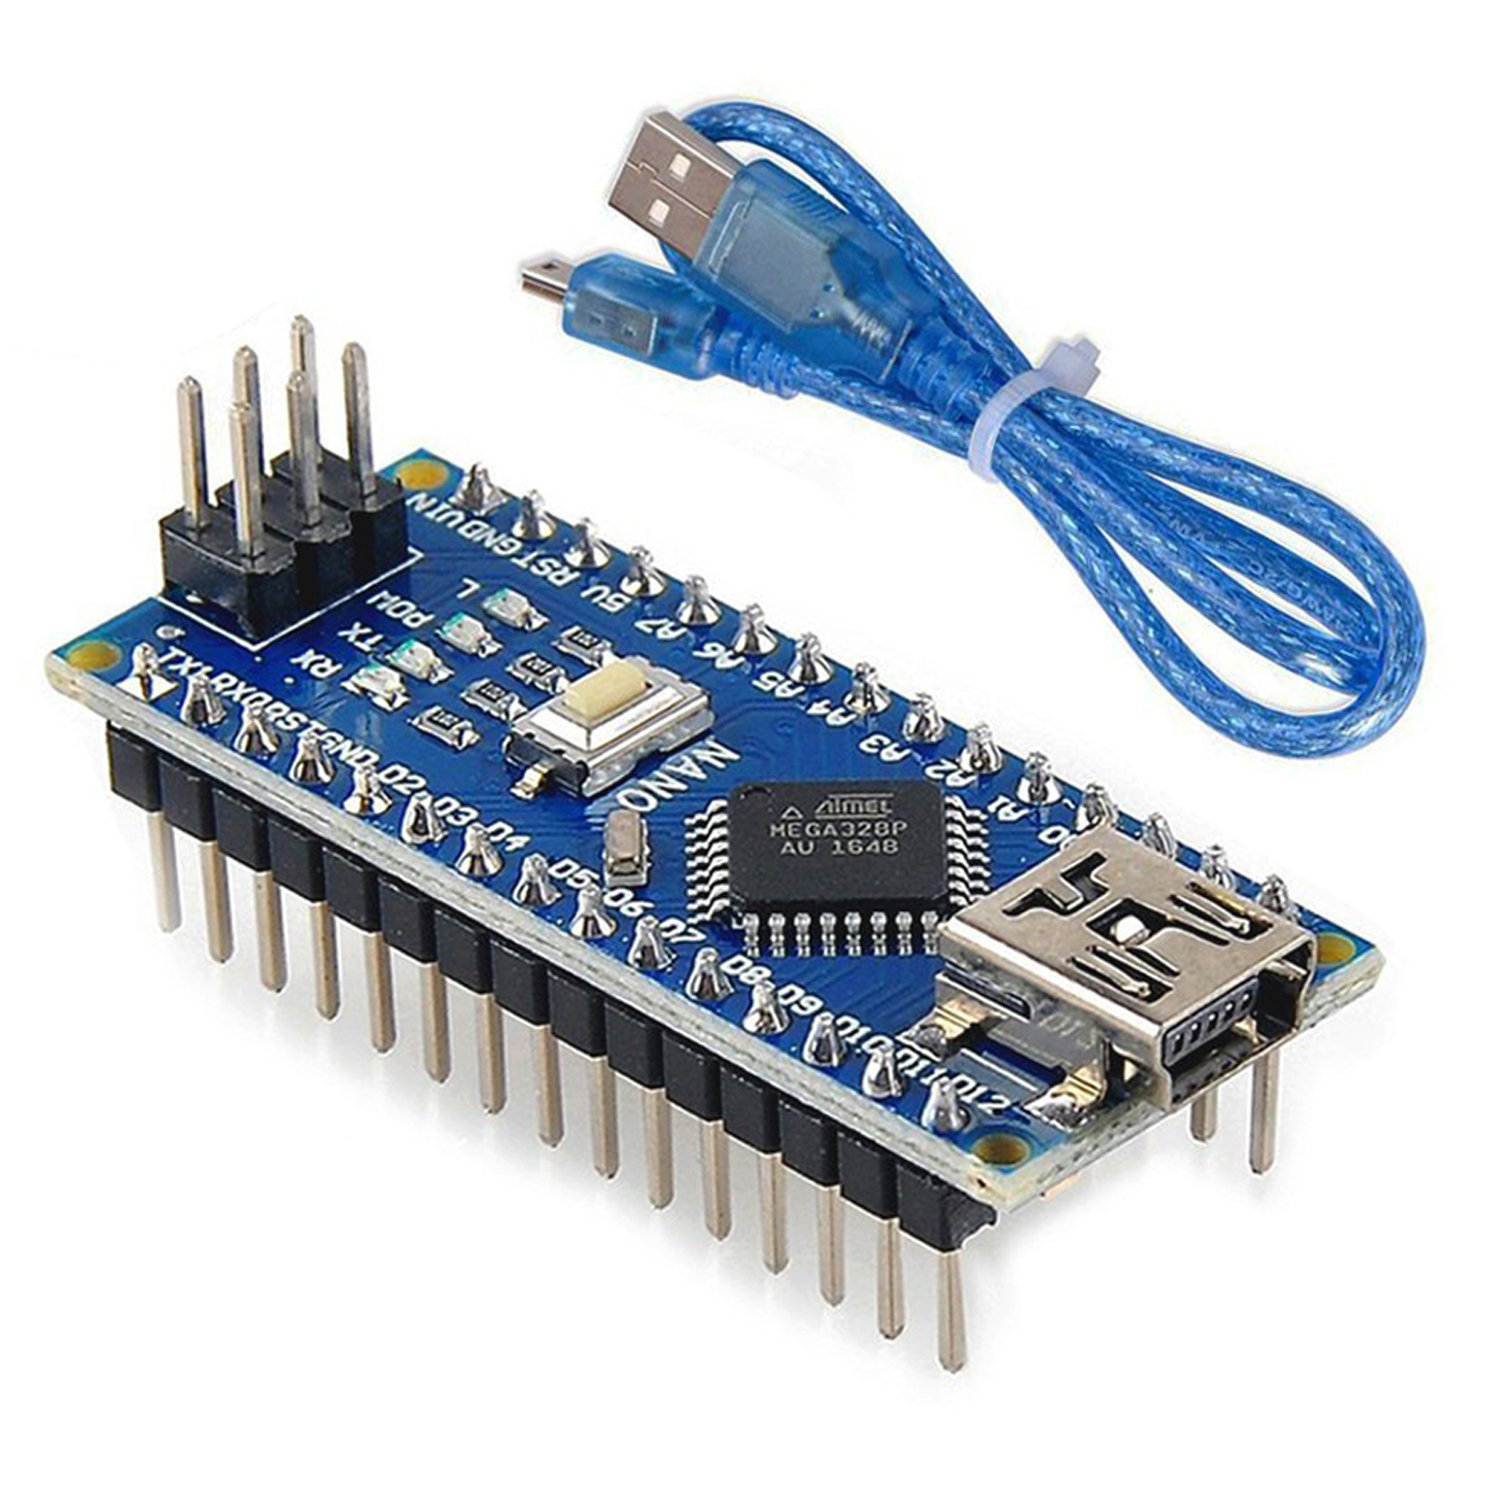 Mini Nano V30 Atmega328p Microcontroller Board Usb Have The New Power Lines Soldered To Gps Circuit When I Cable For Arduino Electronics